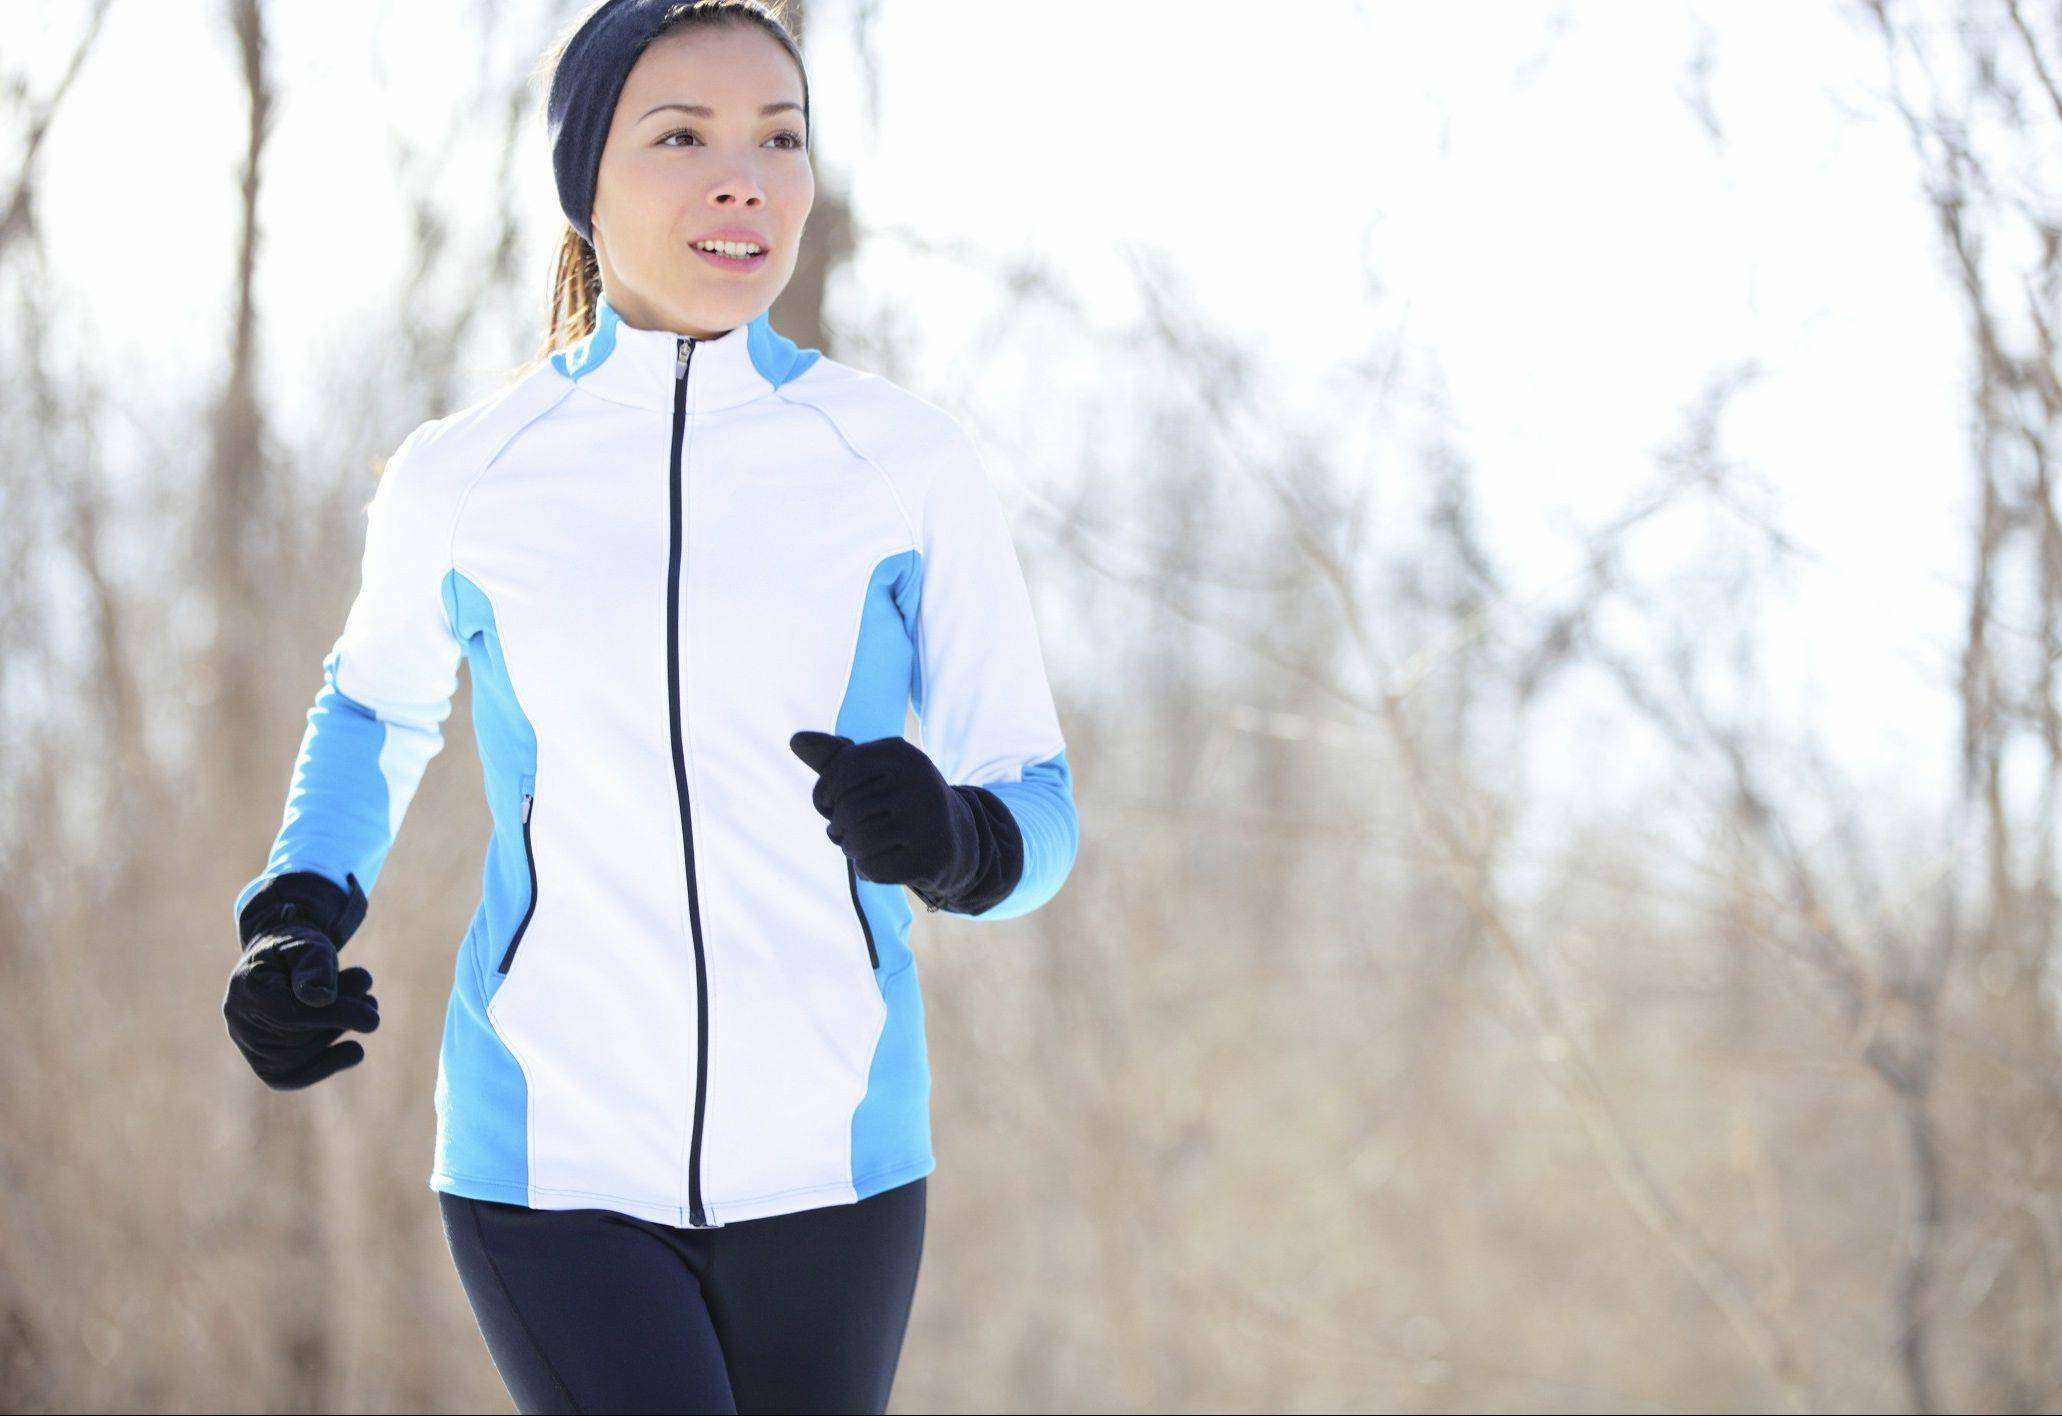 Outdoor activities, such as jogging, can help battle seasonal mood problems during winter.